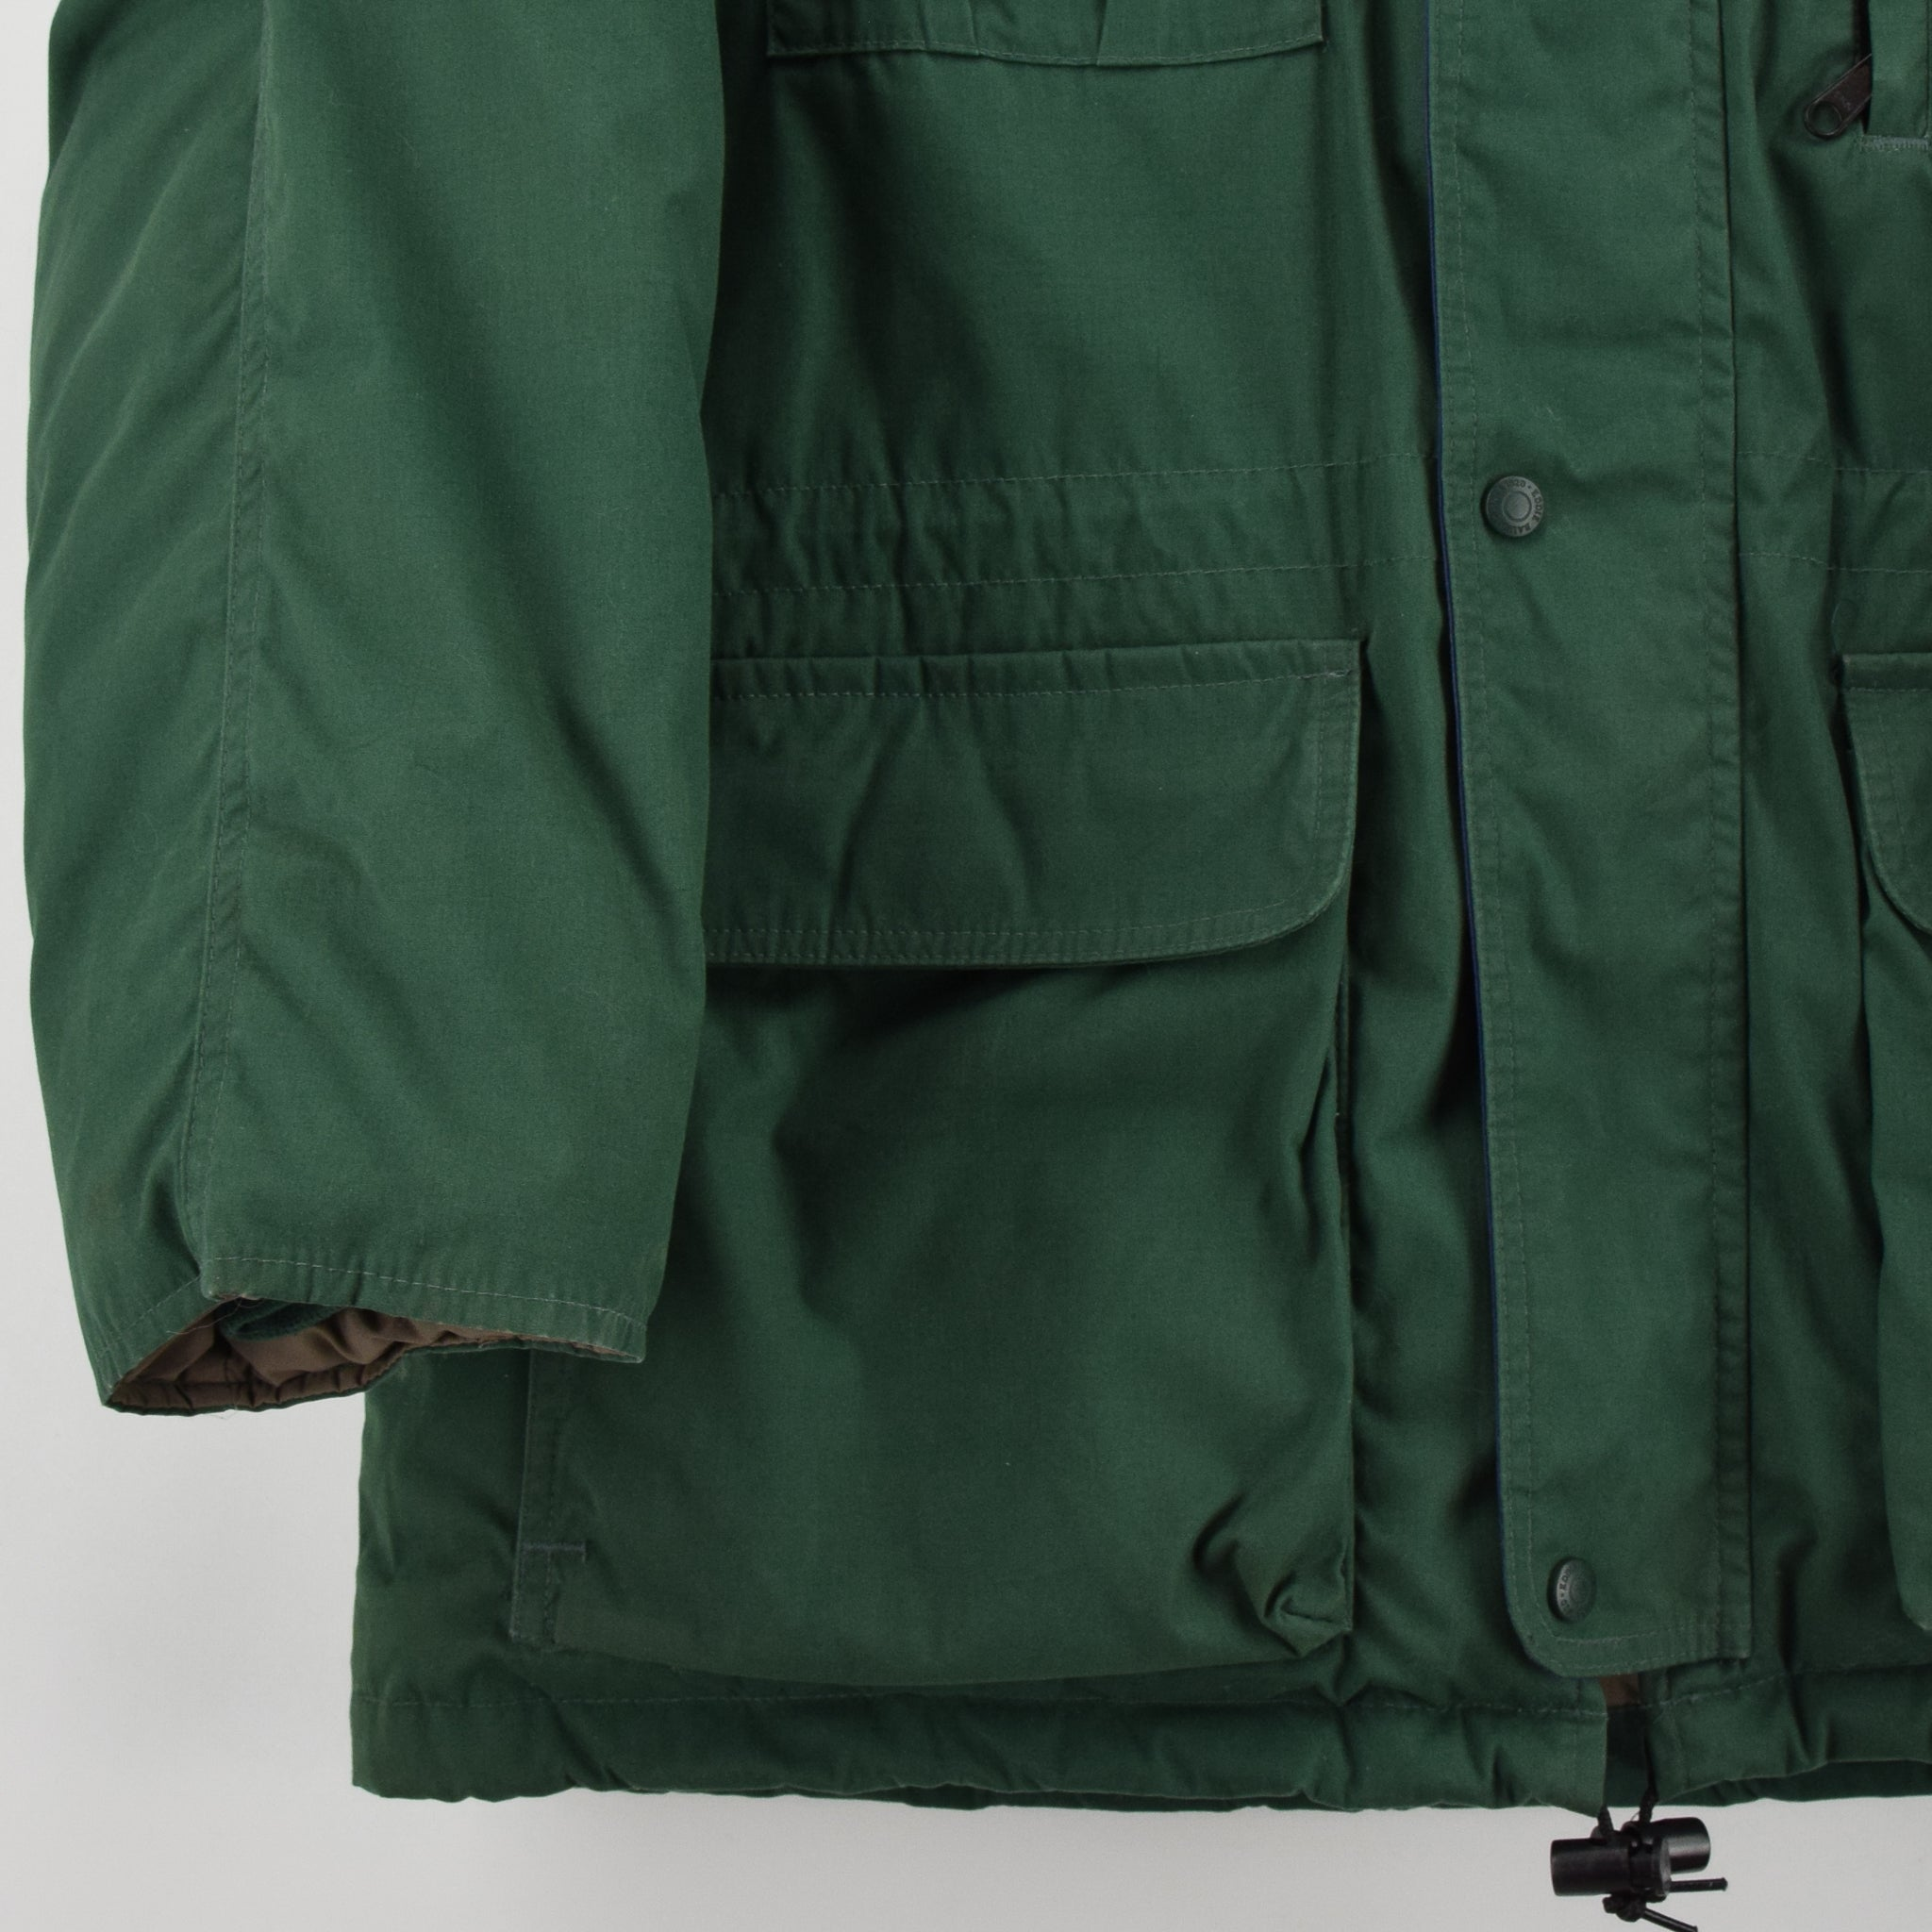 Vintage Eddie Bauer Ridgeline Goose Down Coat Mountain Parka Jacket USA Made L front hem